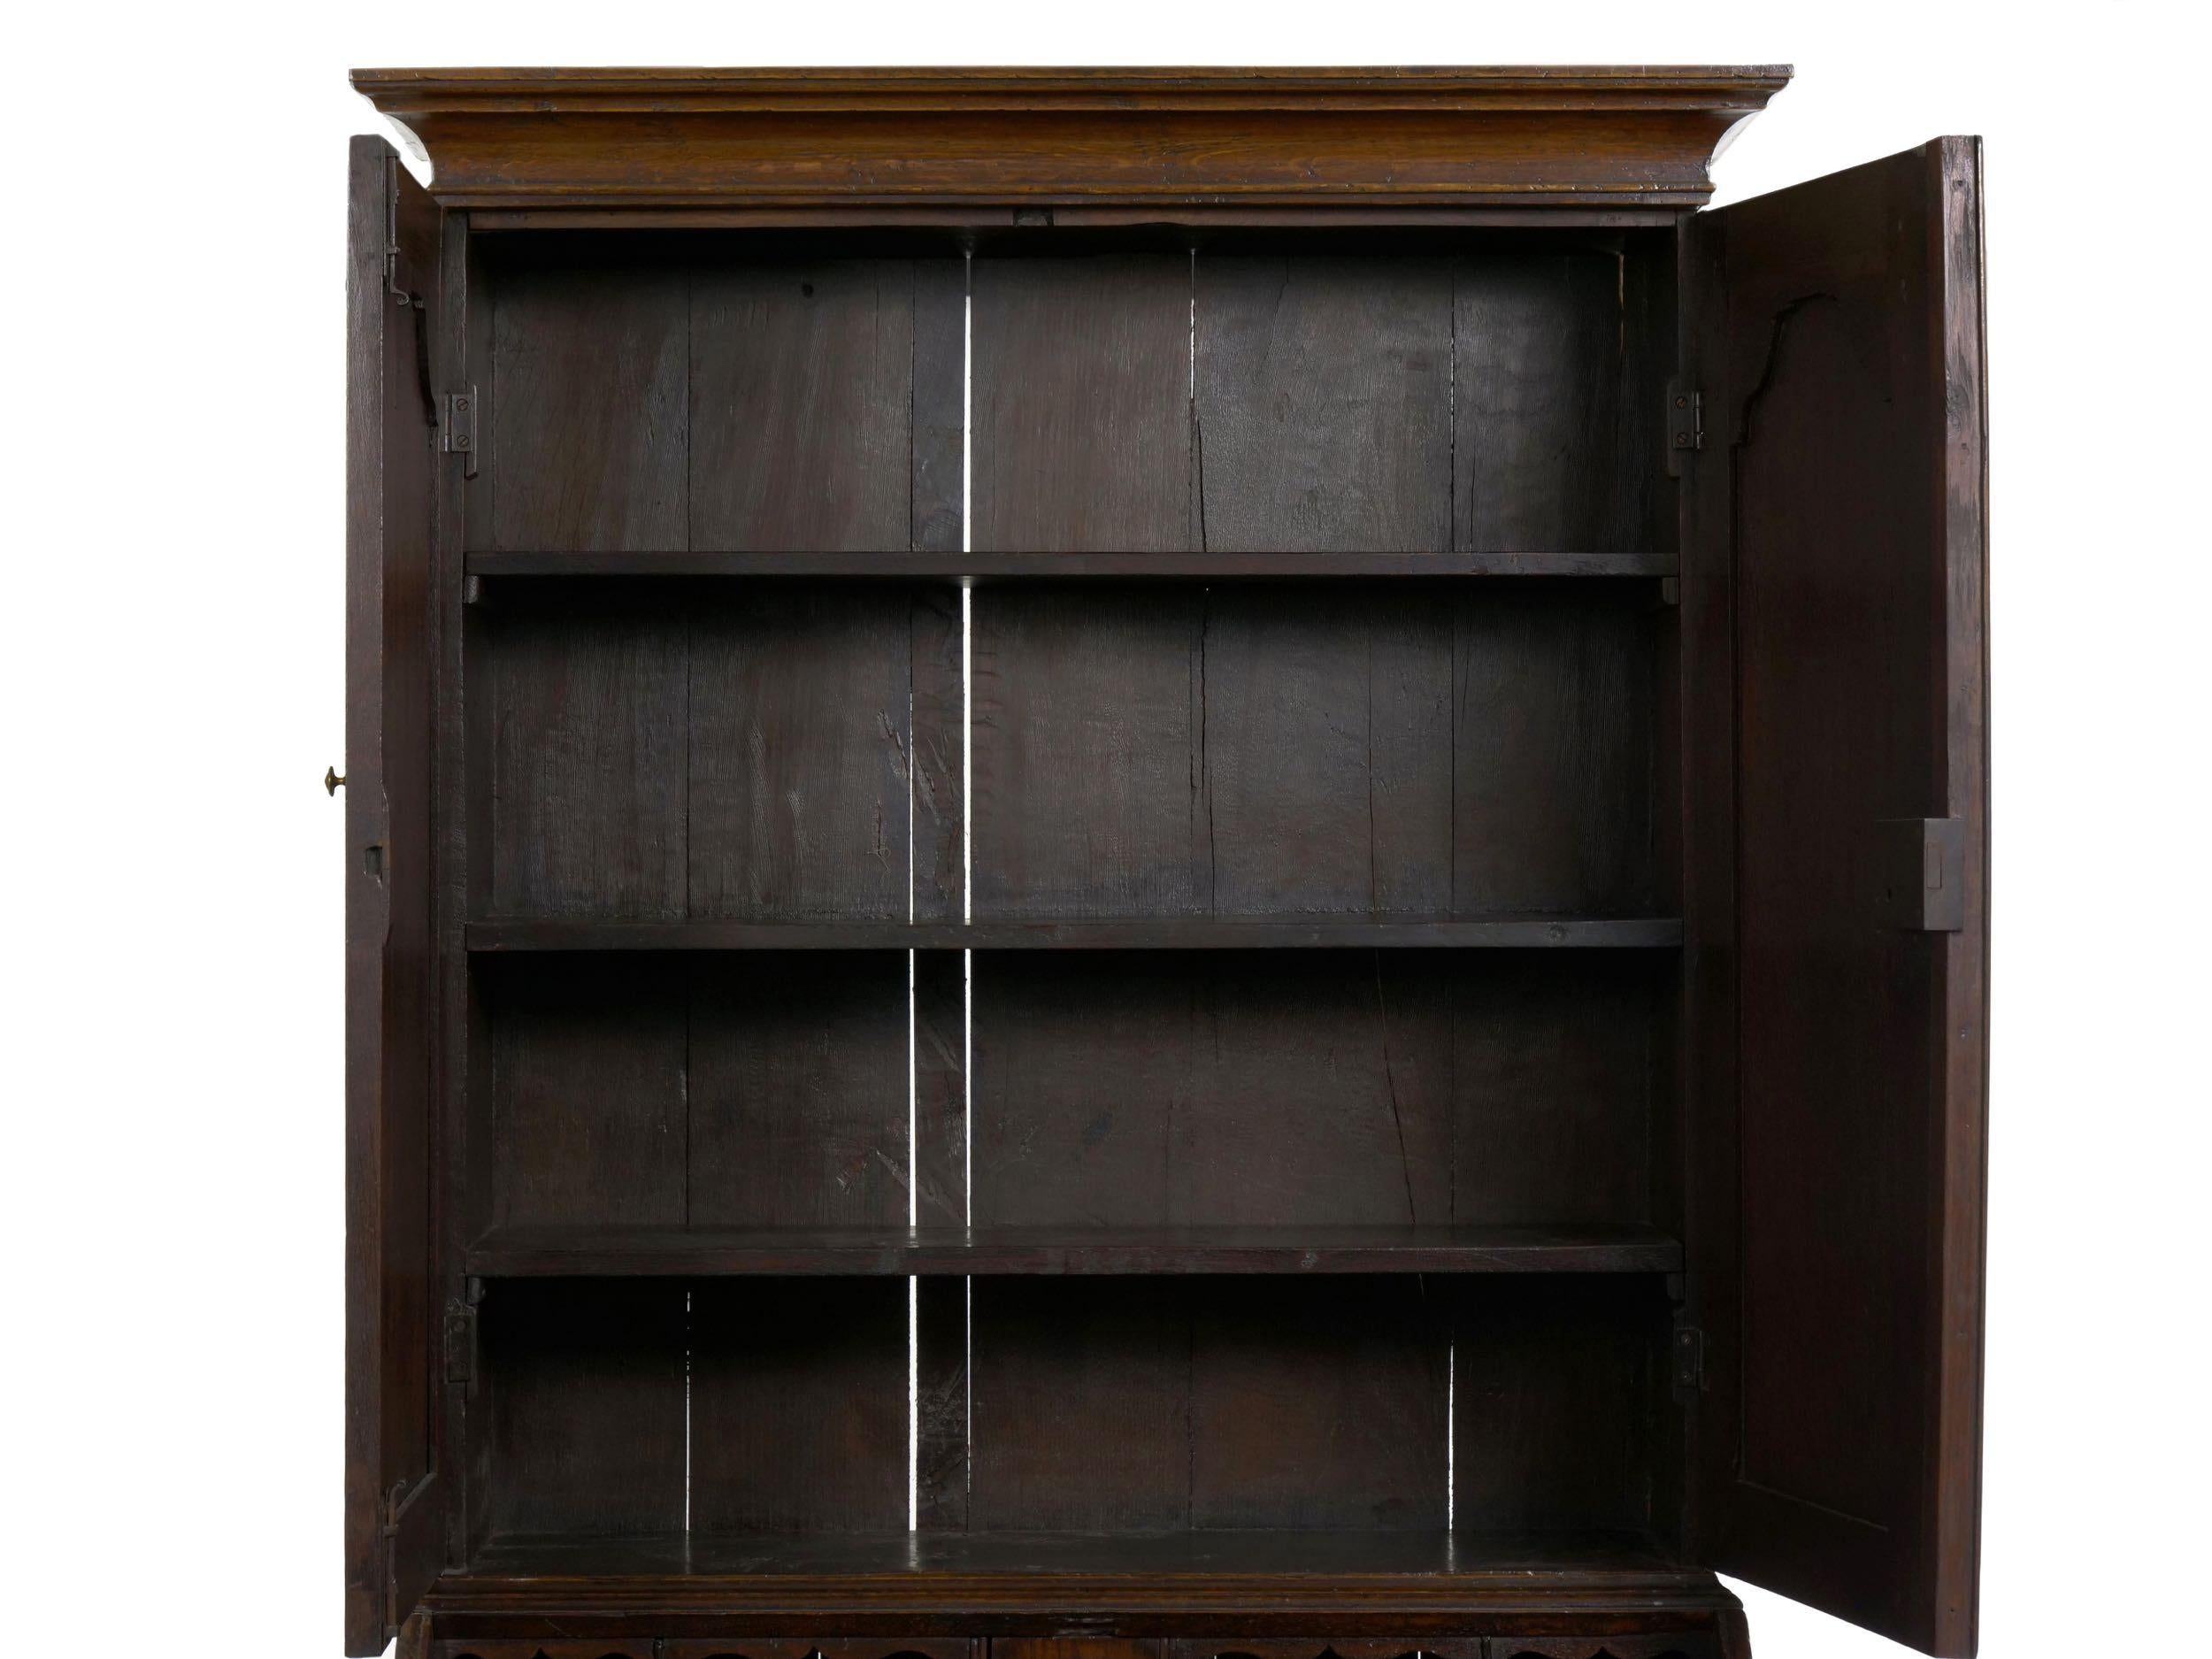 Queen Anne Desks 27 For Sale At 1stdibs >> English Queen Anne Style Oak Antique Secretary Desk With Bookcase 18th Century